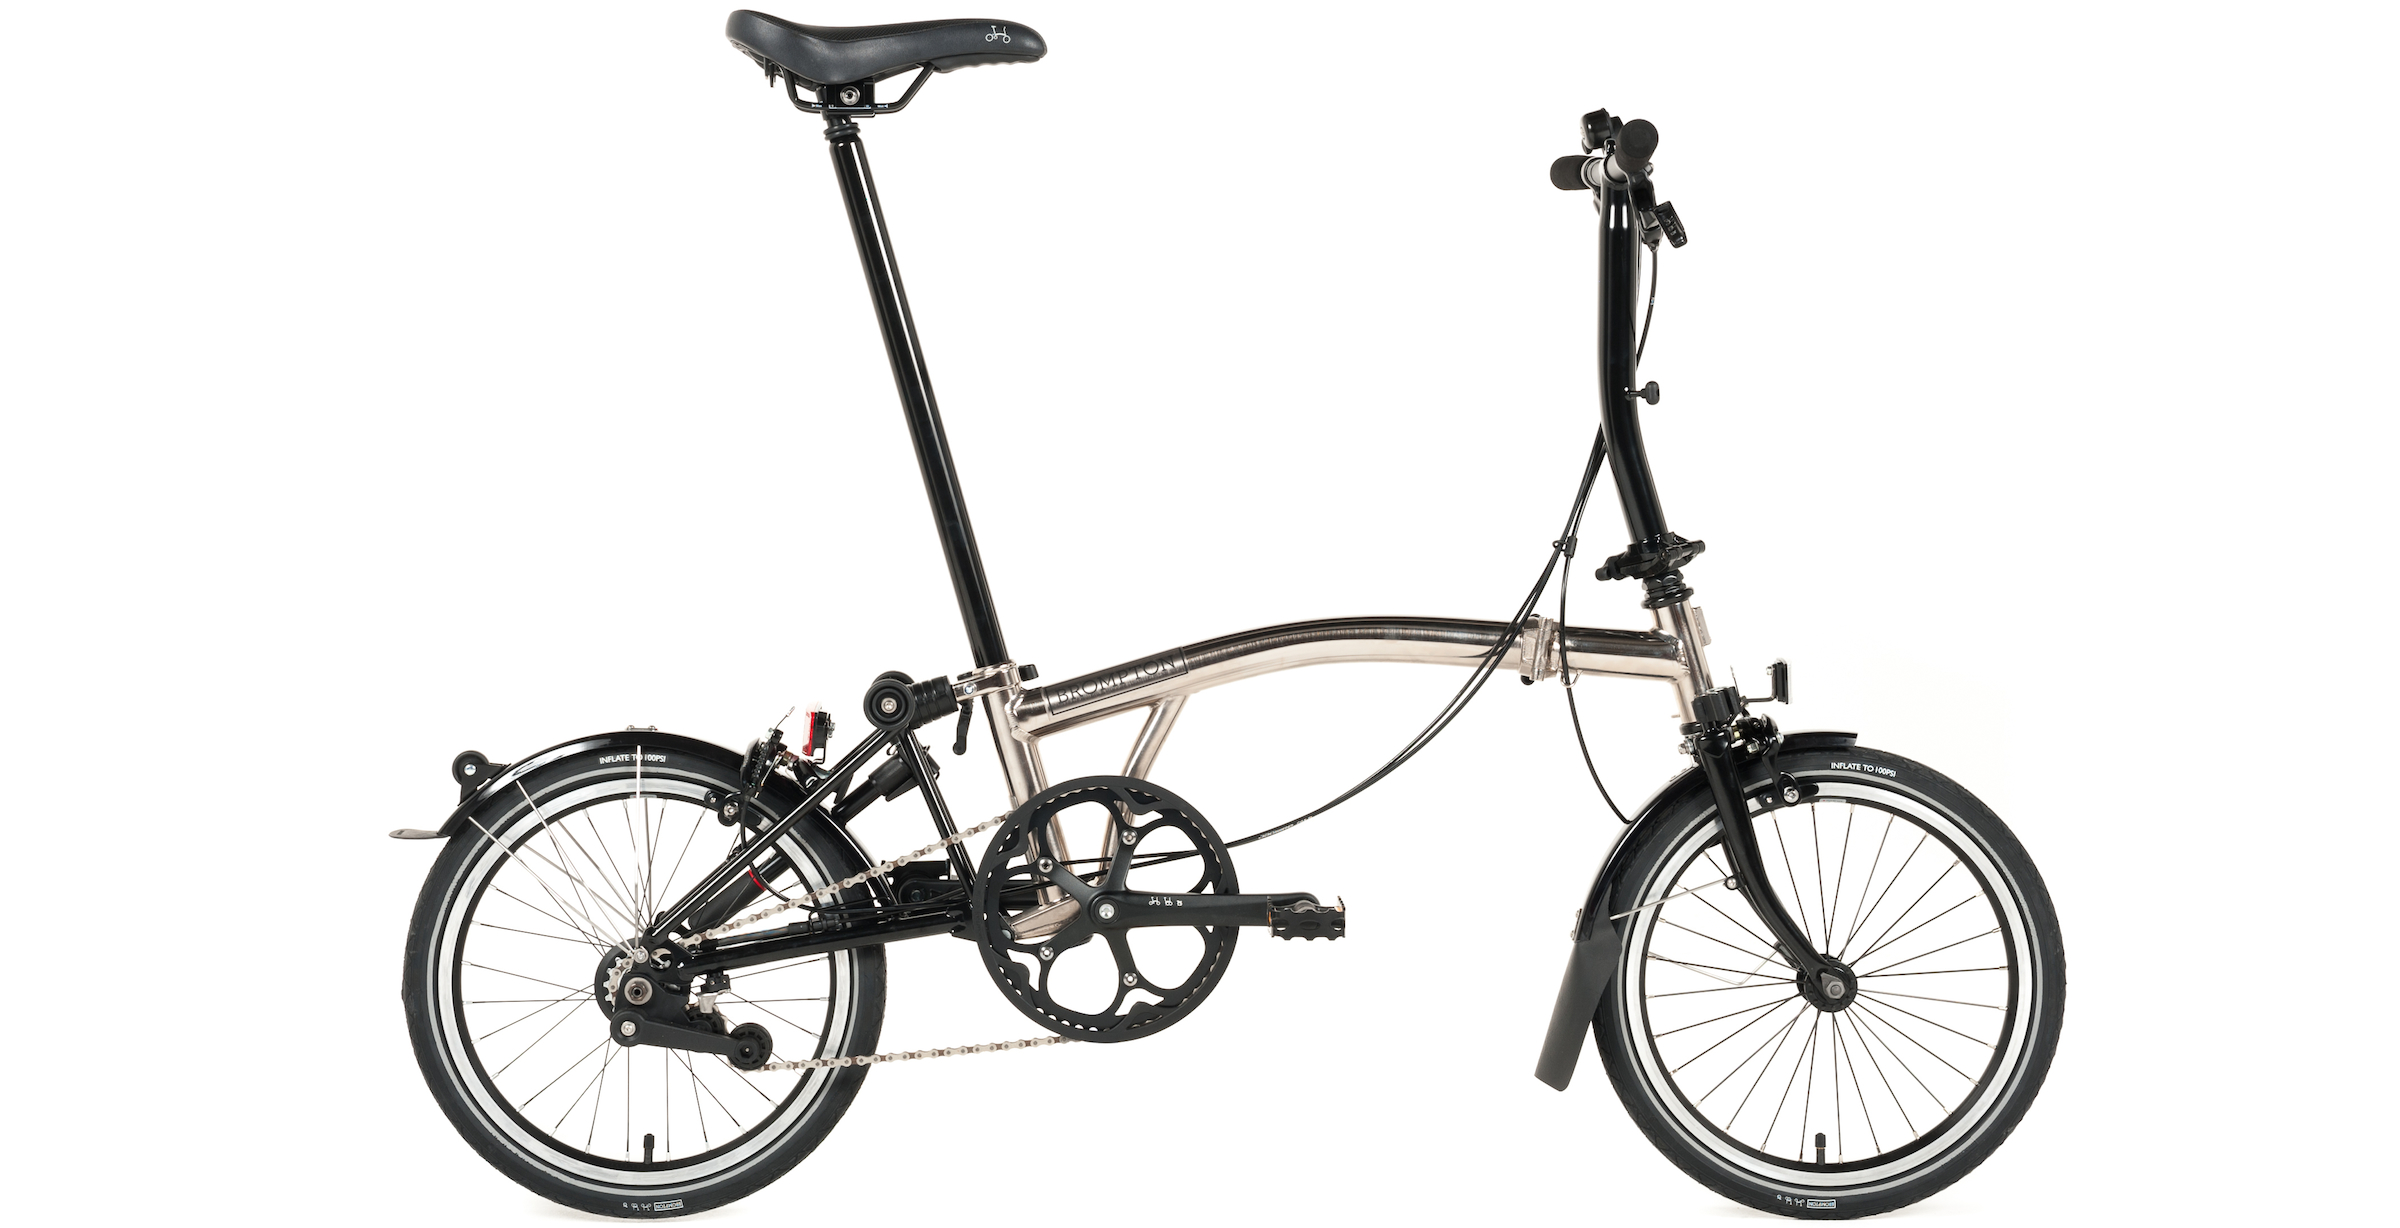 Spring City Bike Buying Guide: Which One Should You Choose